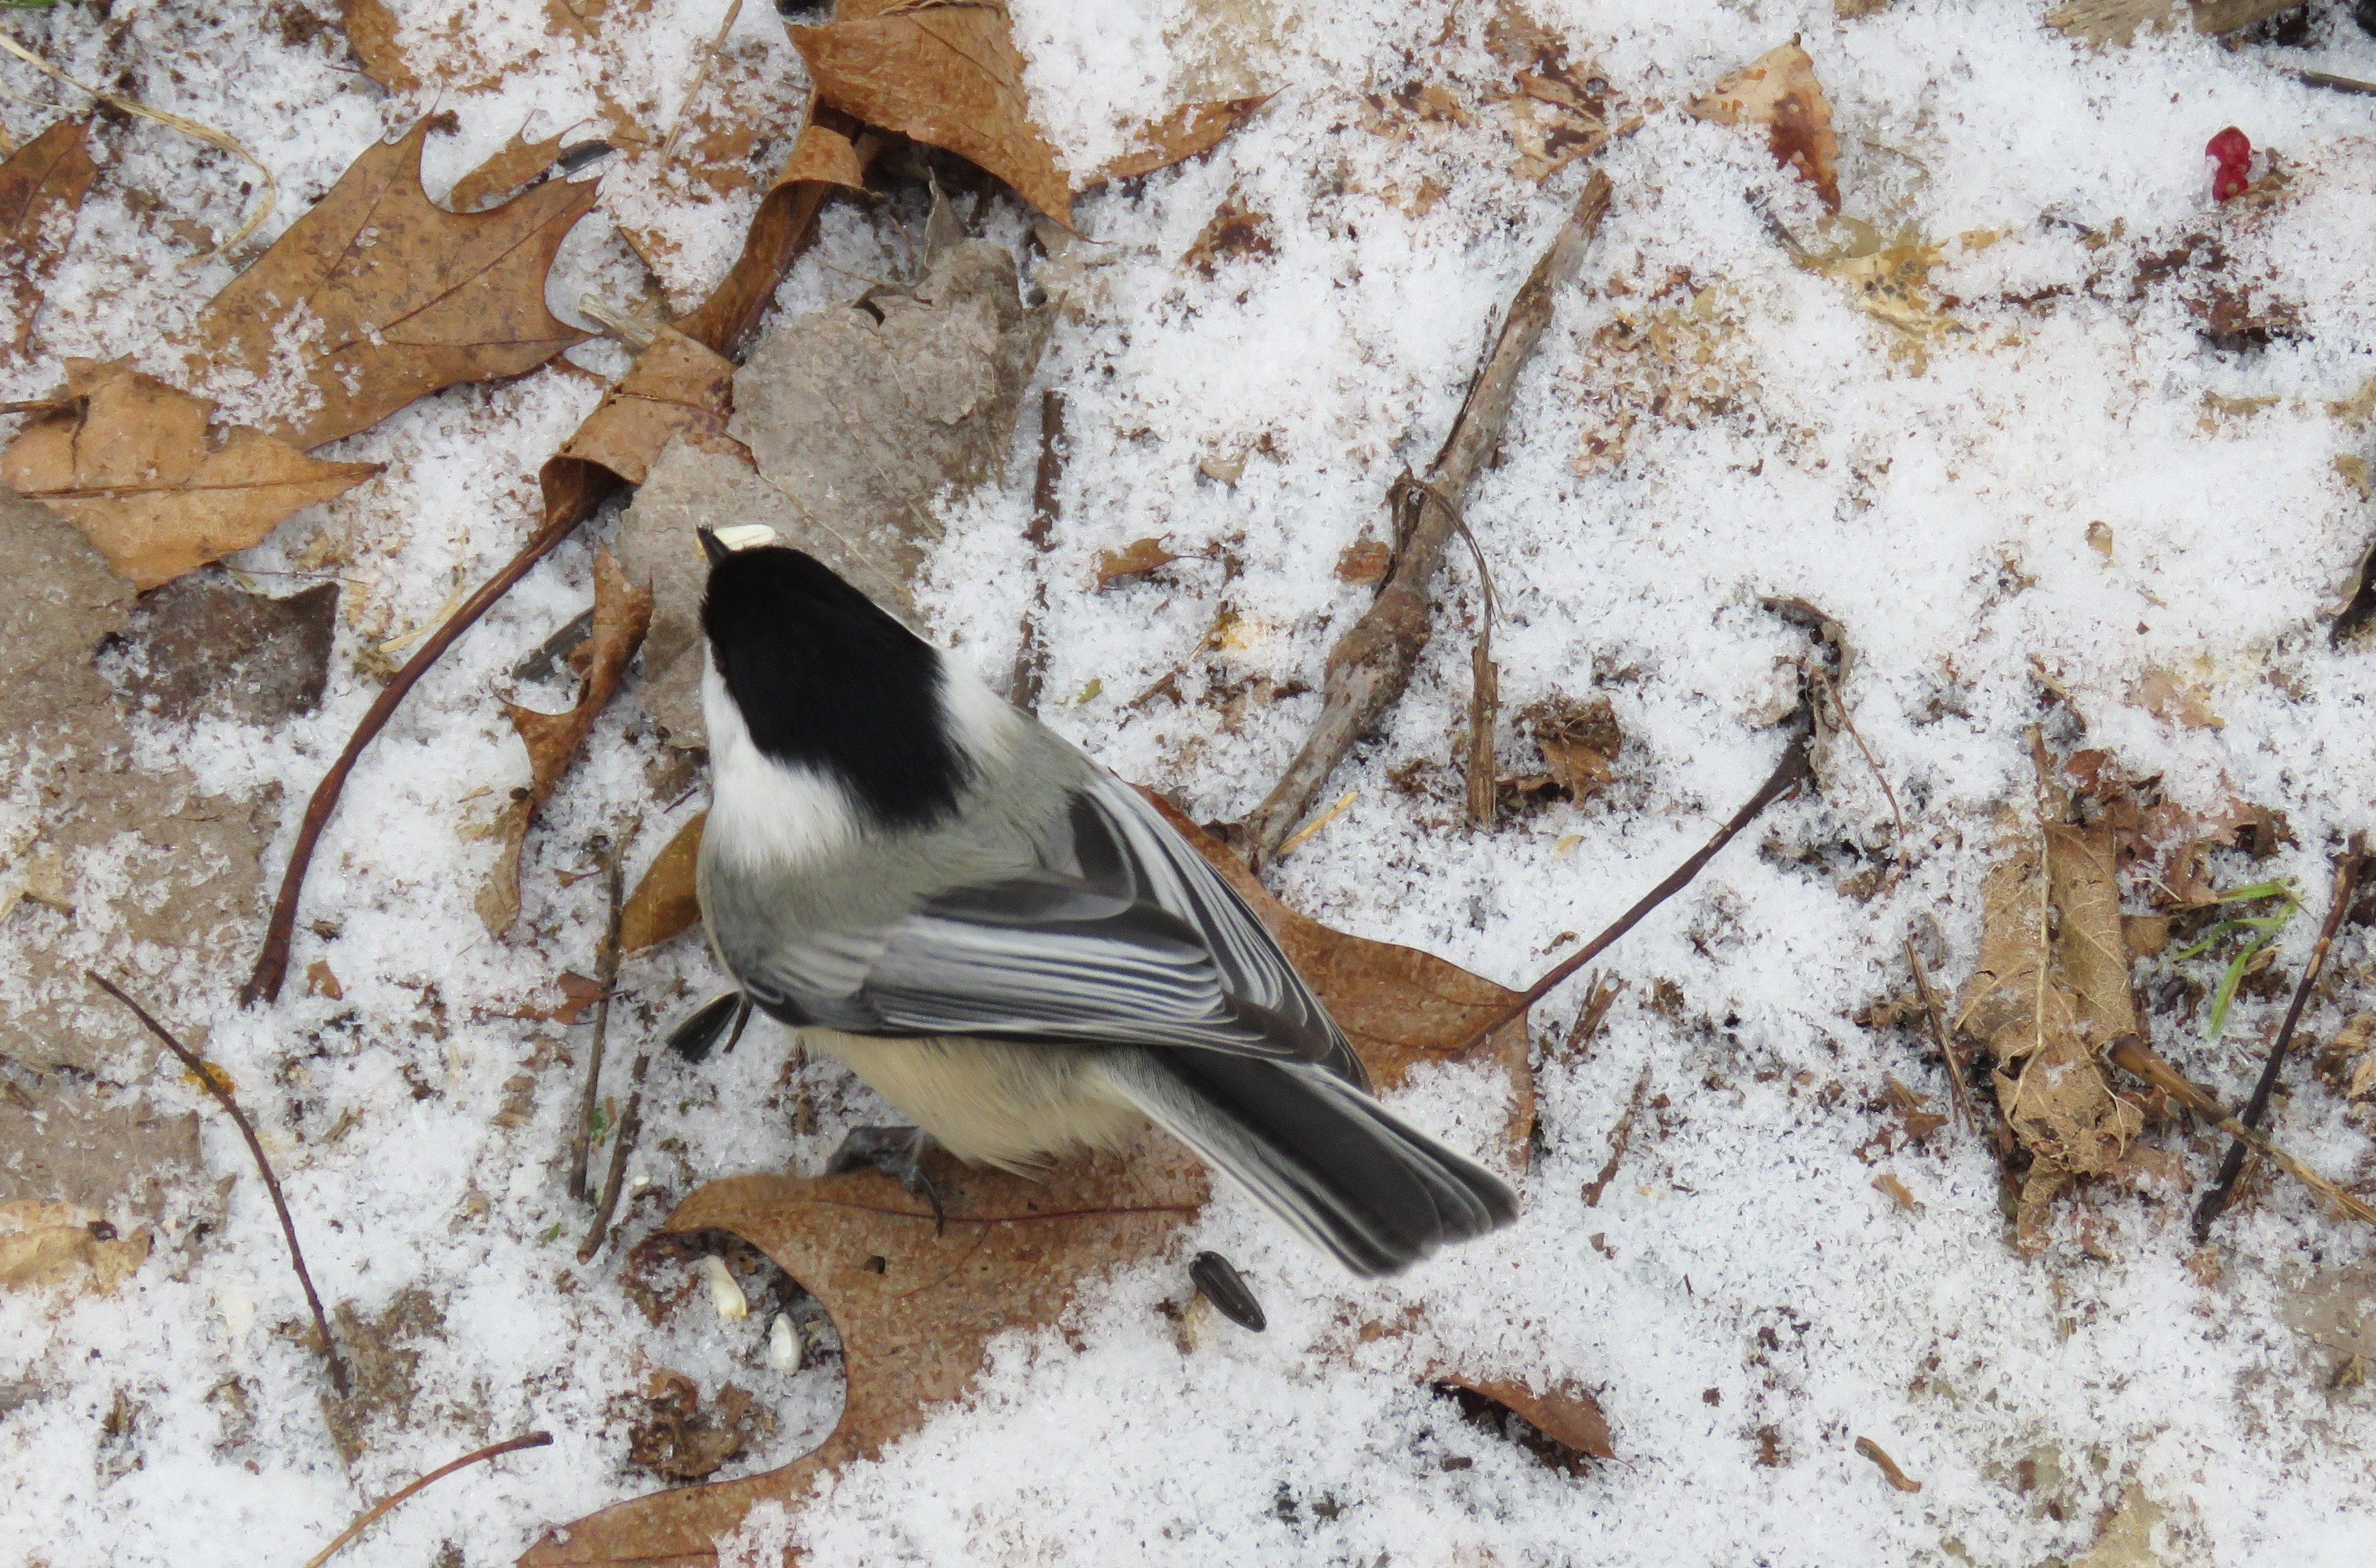 A photo of a Black-capped Chickadee standing on leaf and snow-covered ground, taken from above.